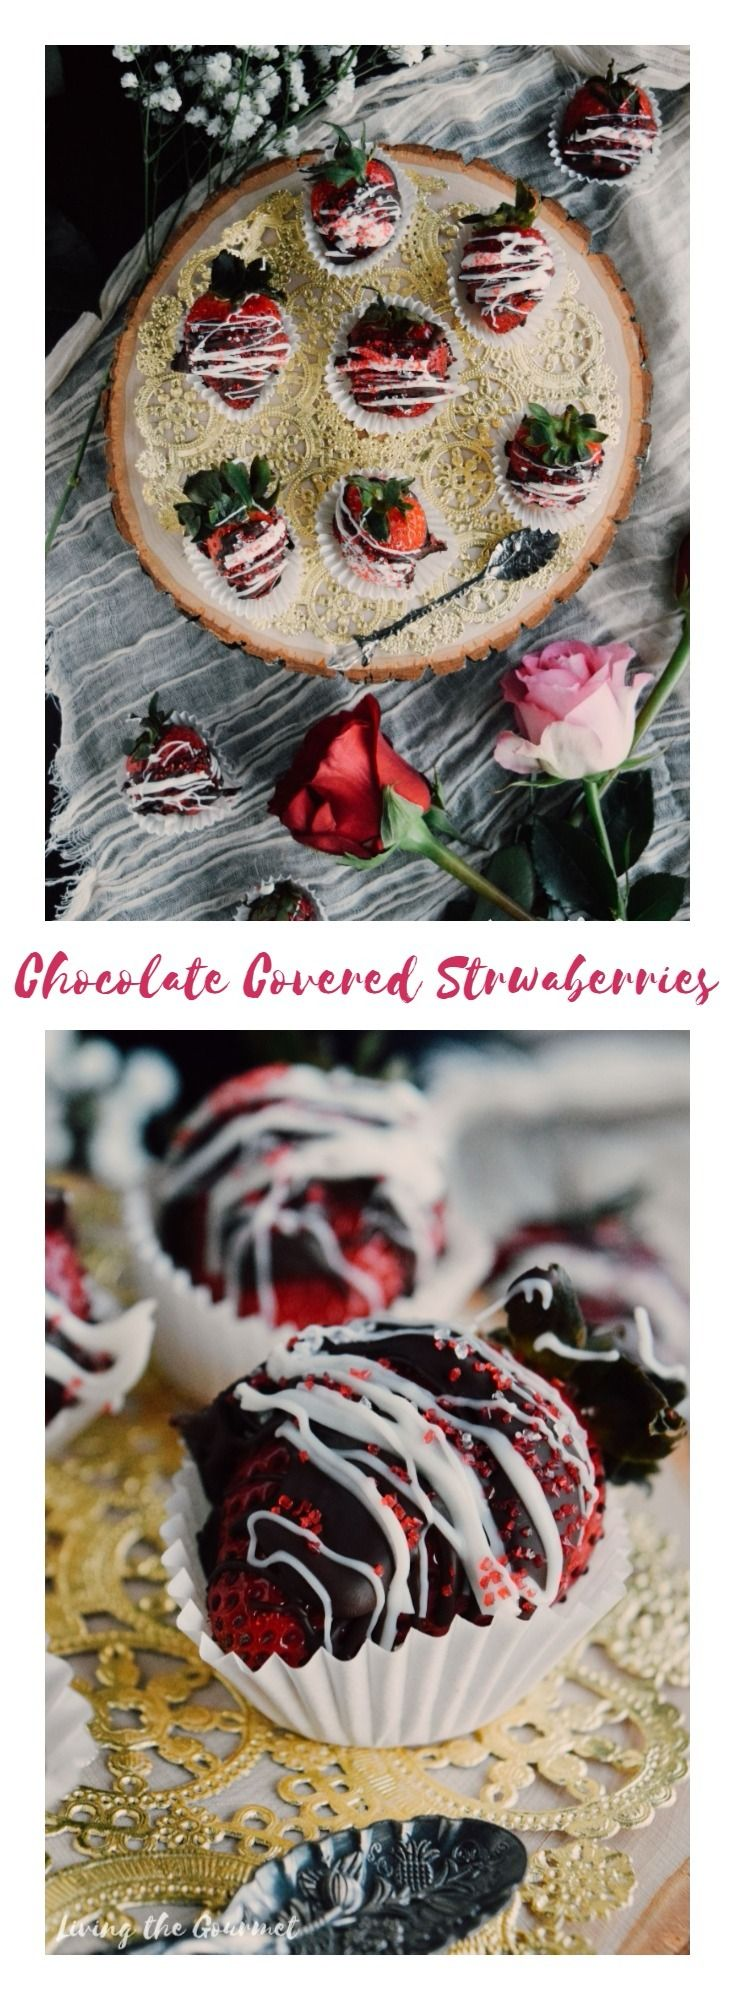 An easy, elegant treat that is always a sweet surprise no matter the occasion. Surprise your loved ones with these Chocolate Covered Strawberries today! Time for a little Valentine's Day recap, friends. One of my favorite quotes from any movie comes from the film Constantine, in which the film's namesake demon-hunter says to a defeated...